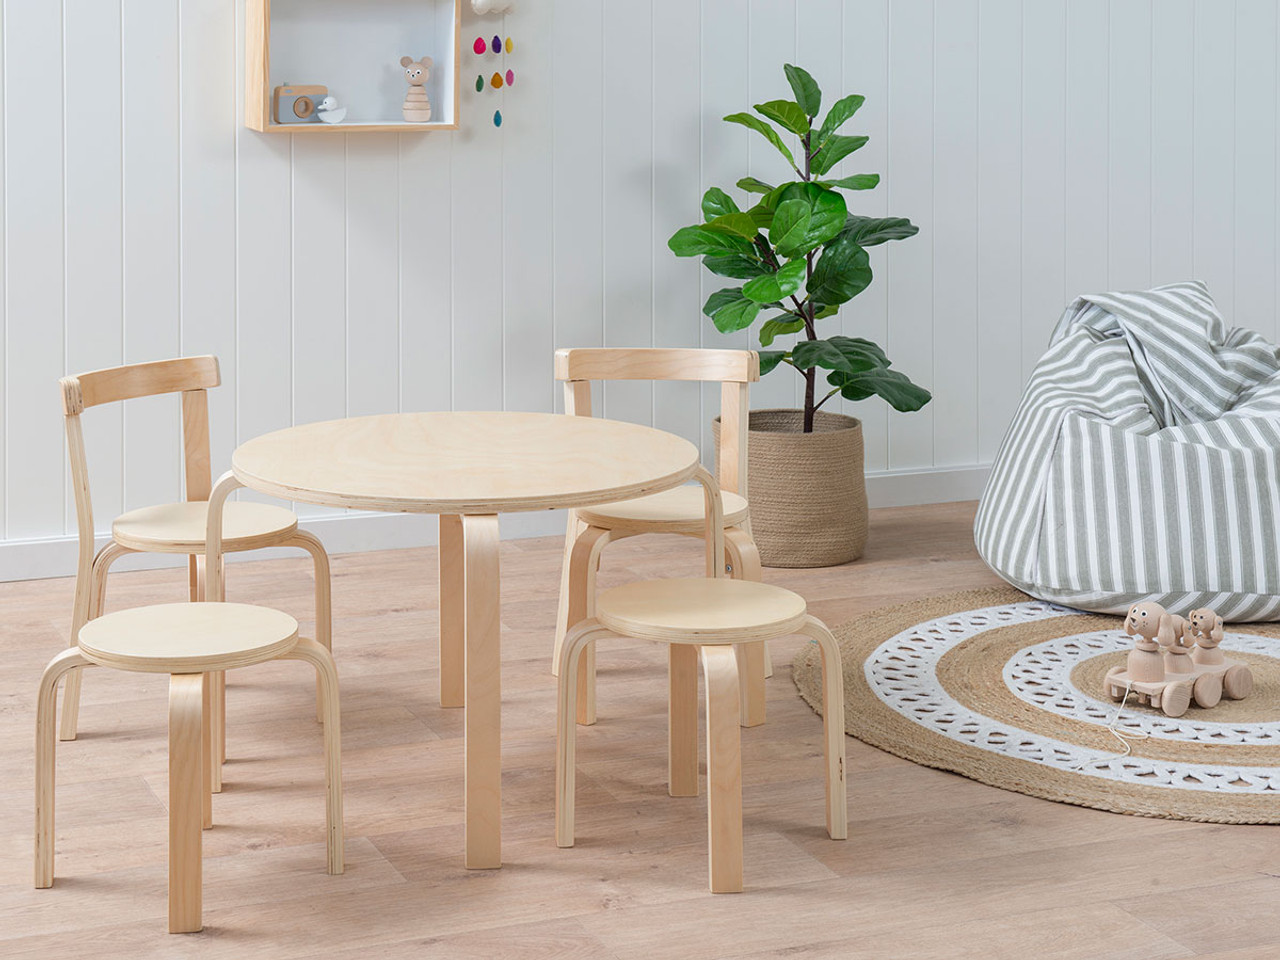 Hudson Kids Table And Chairs Set Natural Mocka Australia